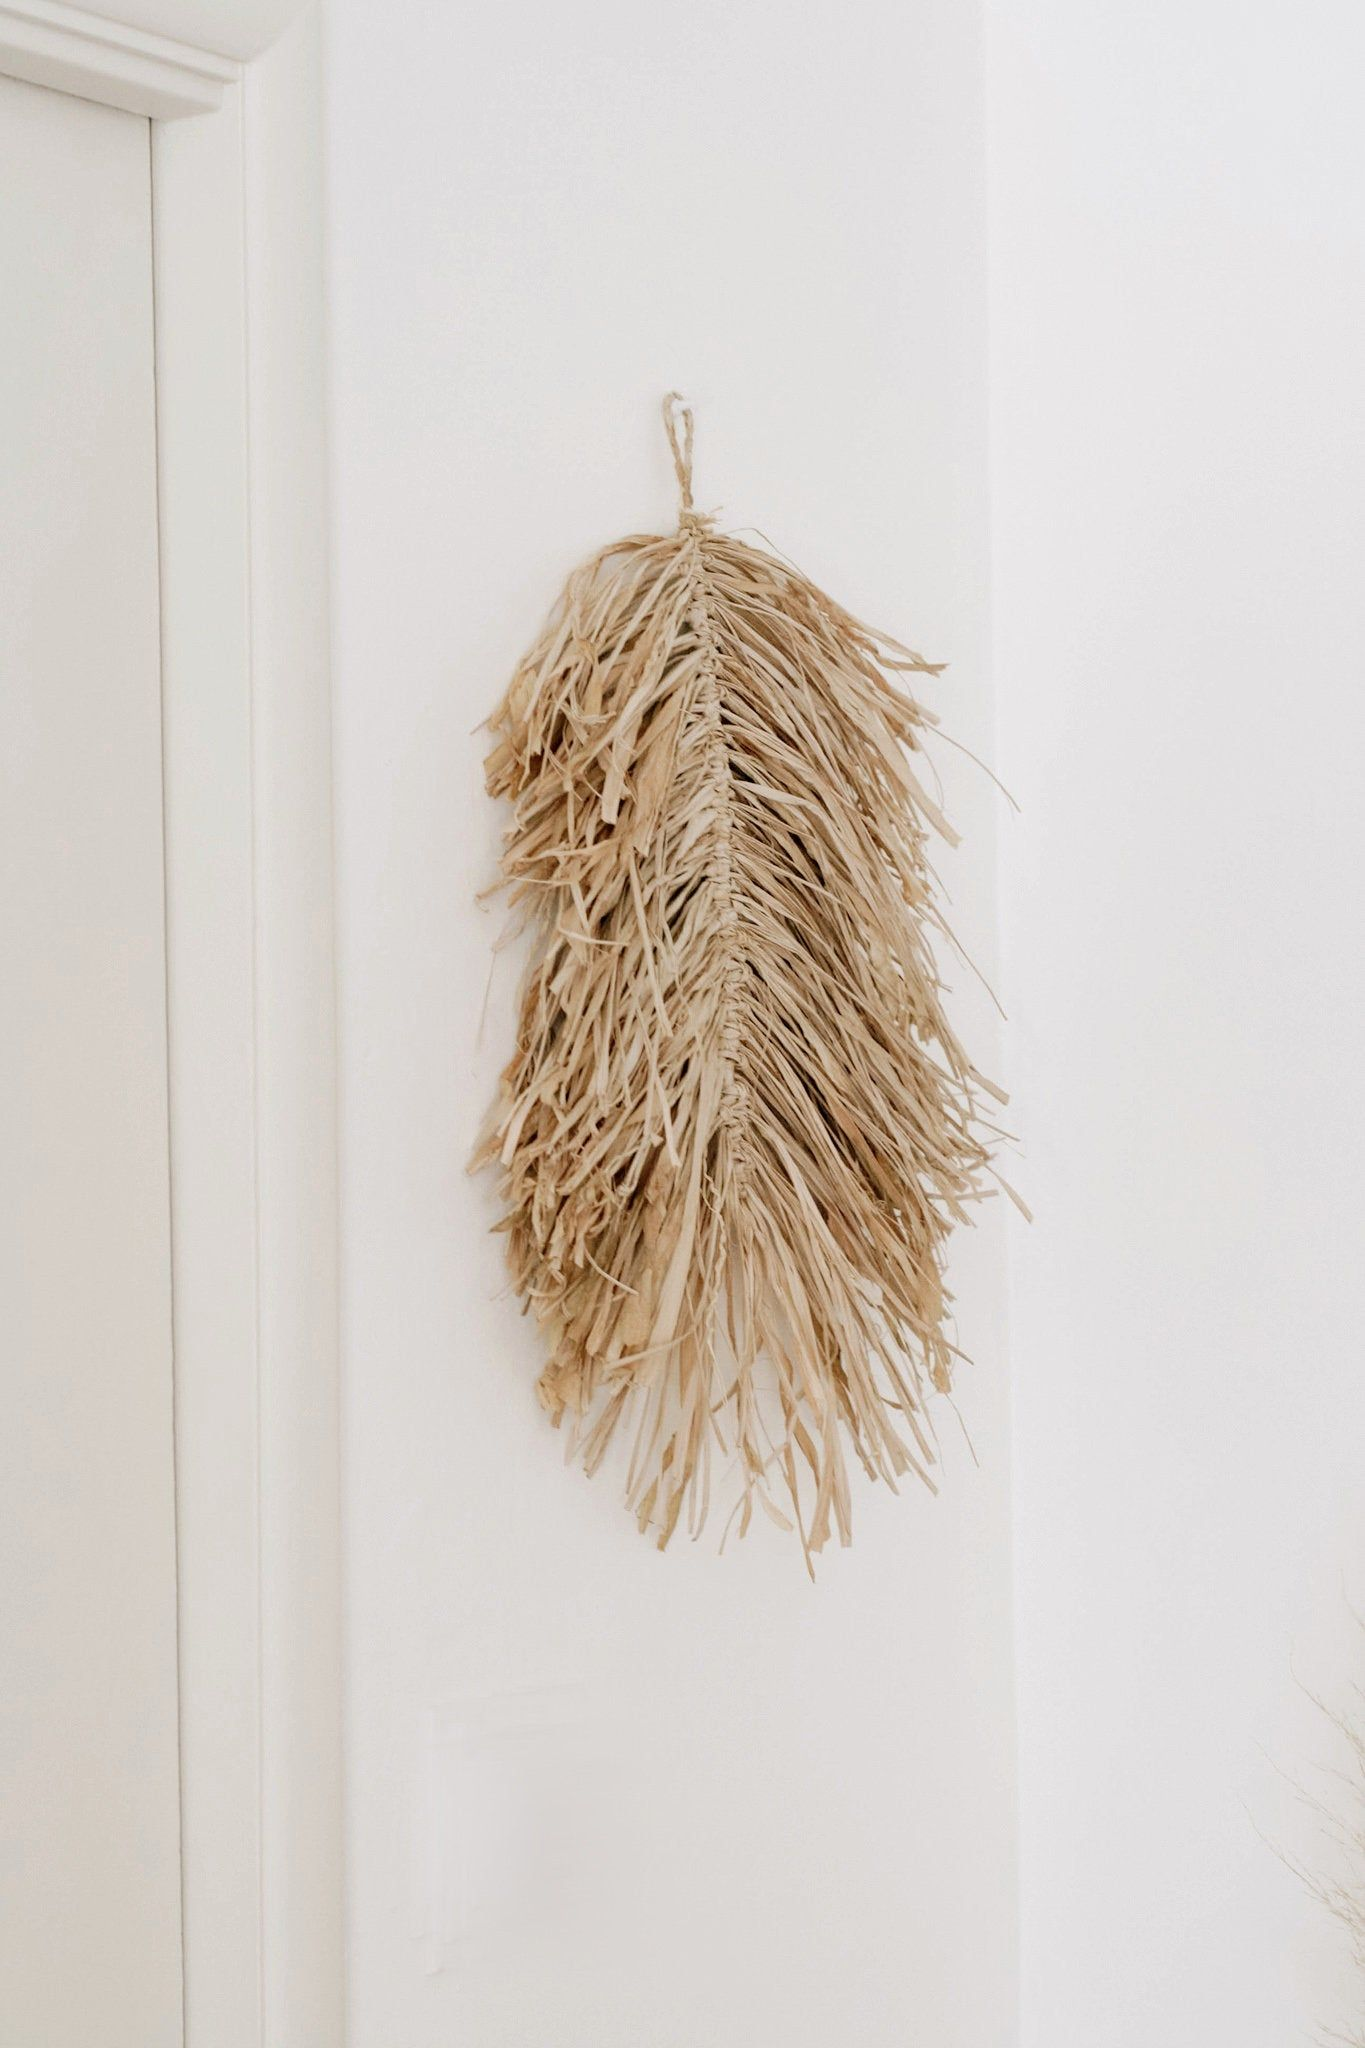 Handmade Natural Raffia Leaf Macrame Wall Hanging Grass Feather Boho Decor Styling Accessory Display N Macrame Wall Hanging Wall Murals Diy Accessories Display